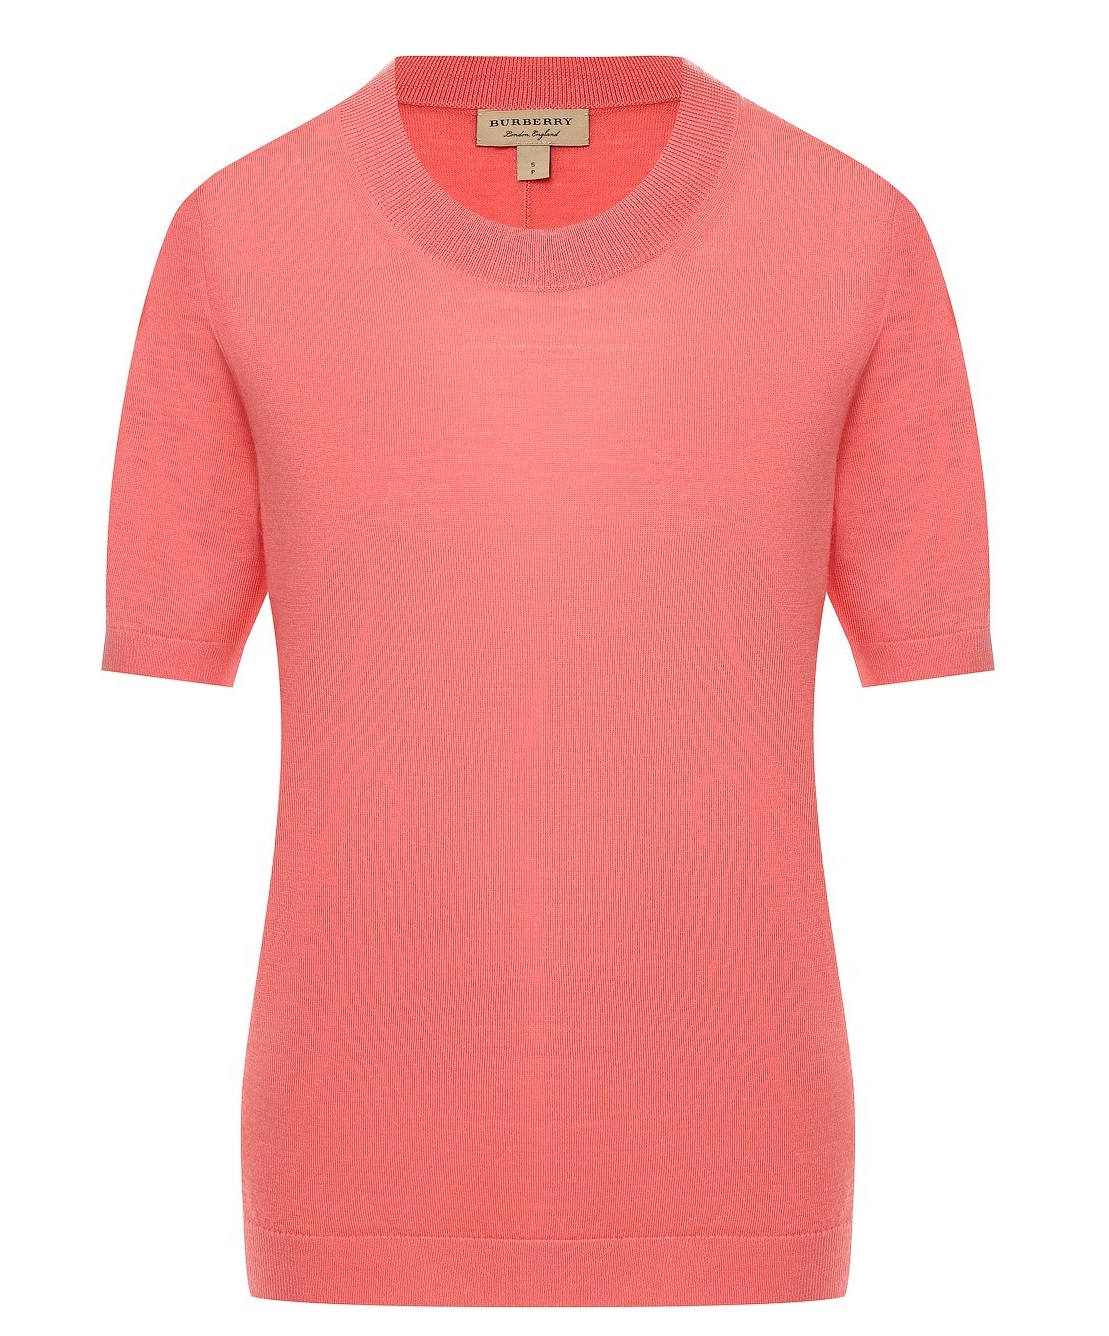 Burberry Short Sleeve Merino Wool Sweater In Pink